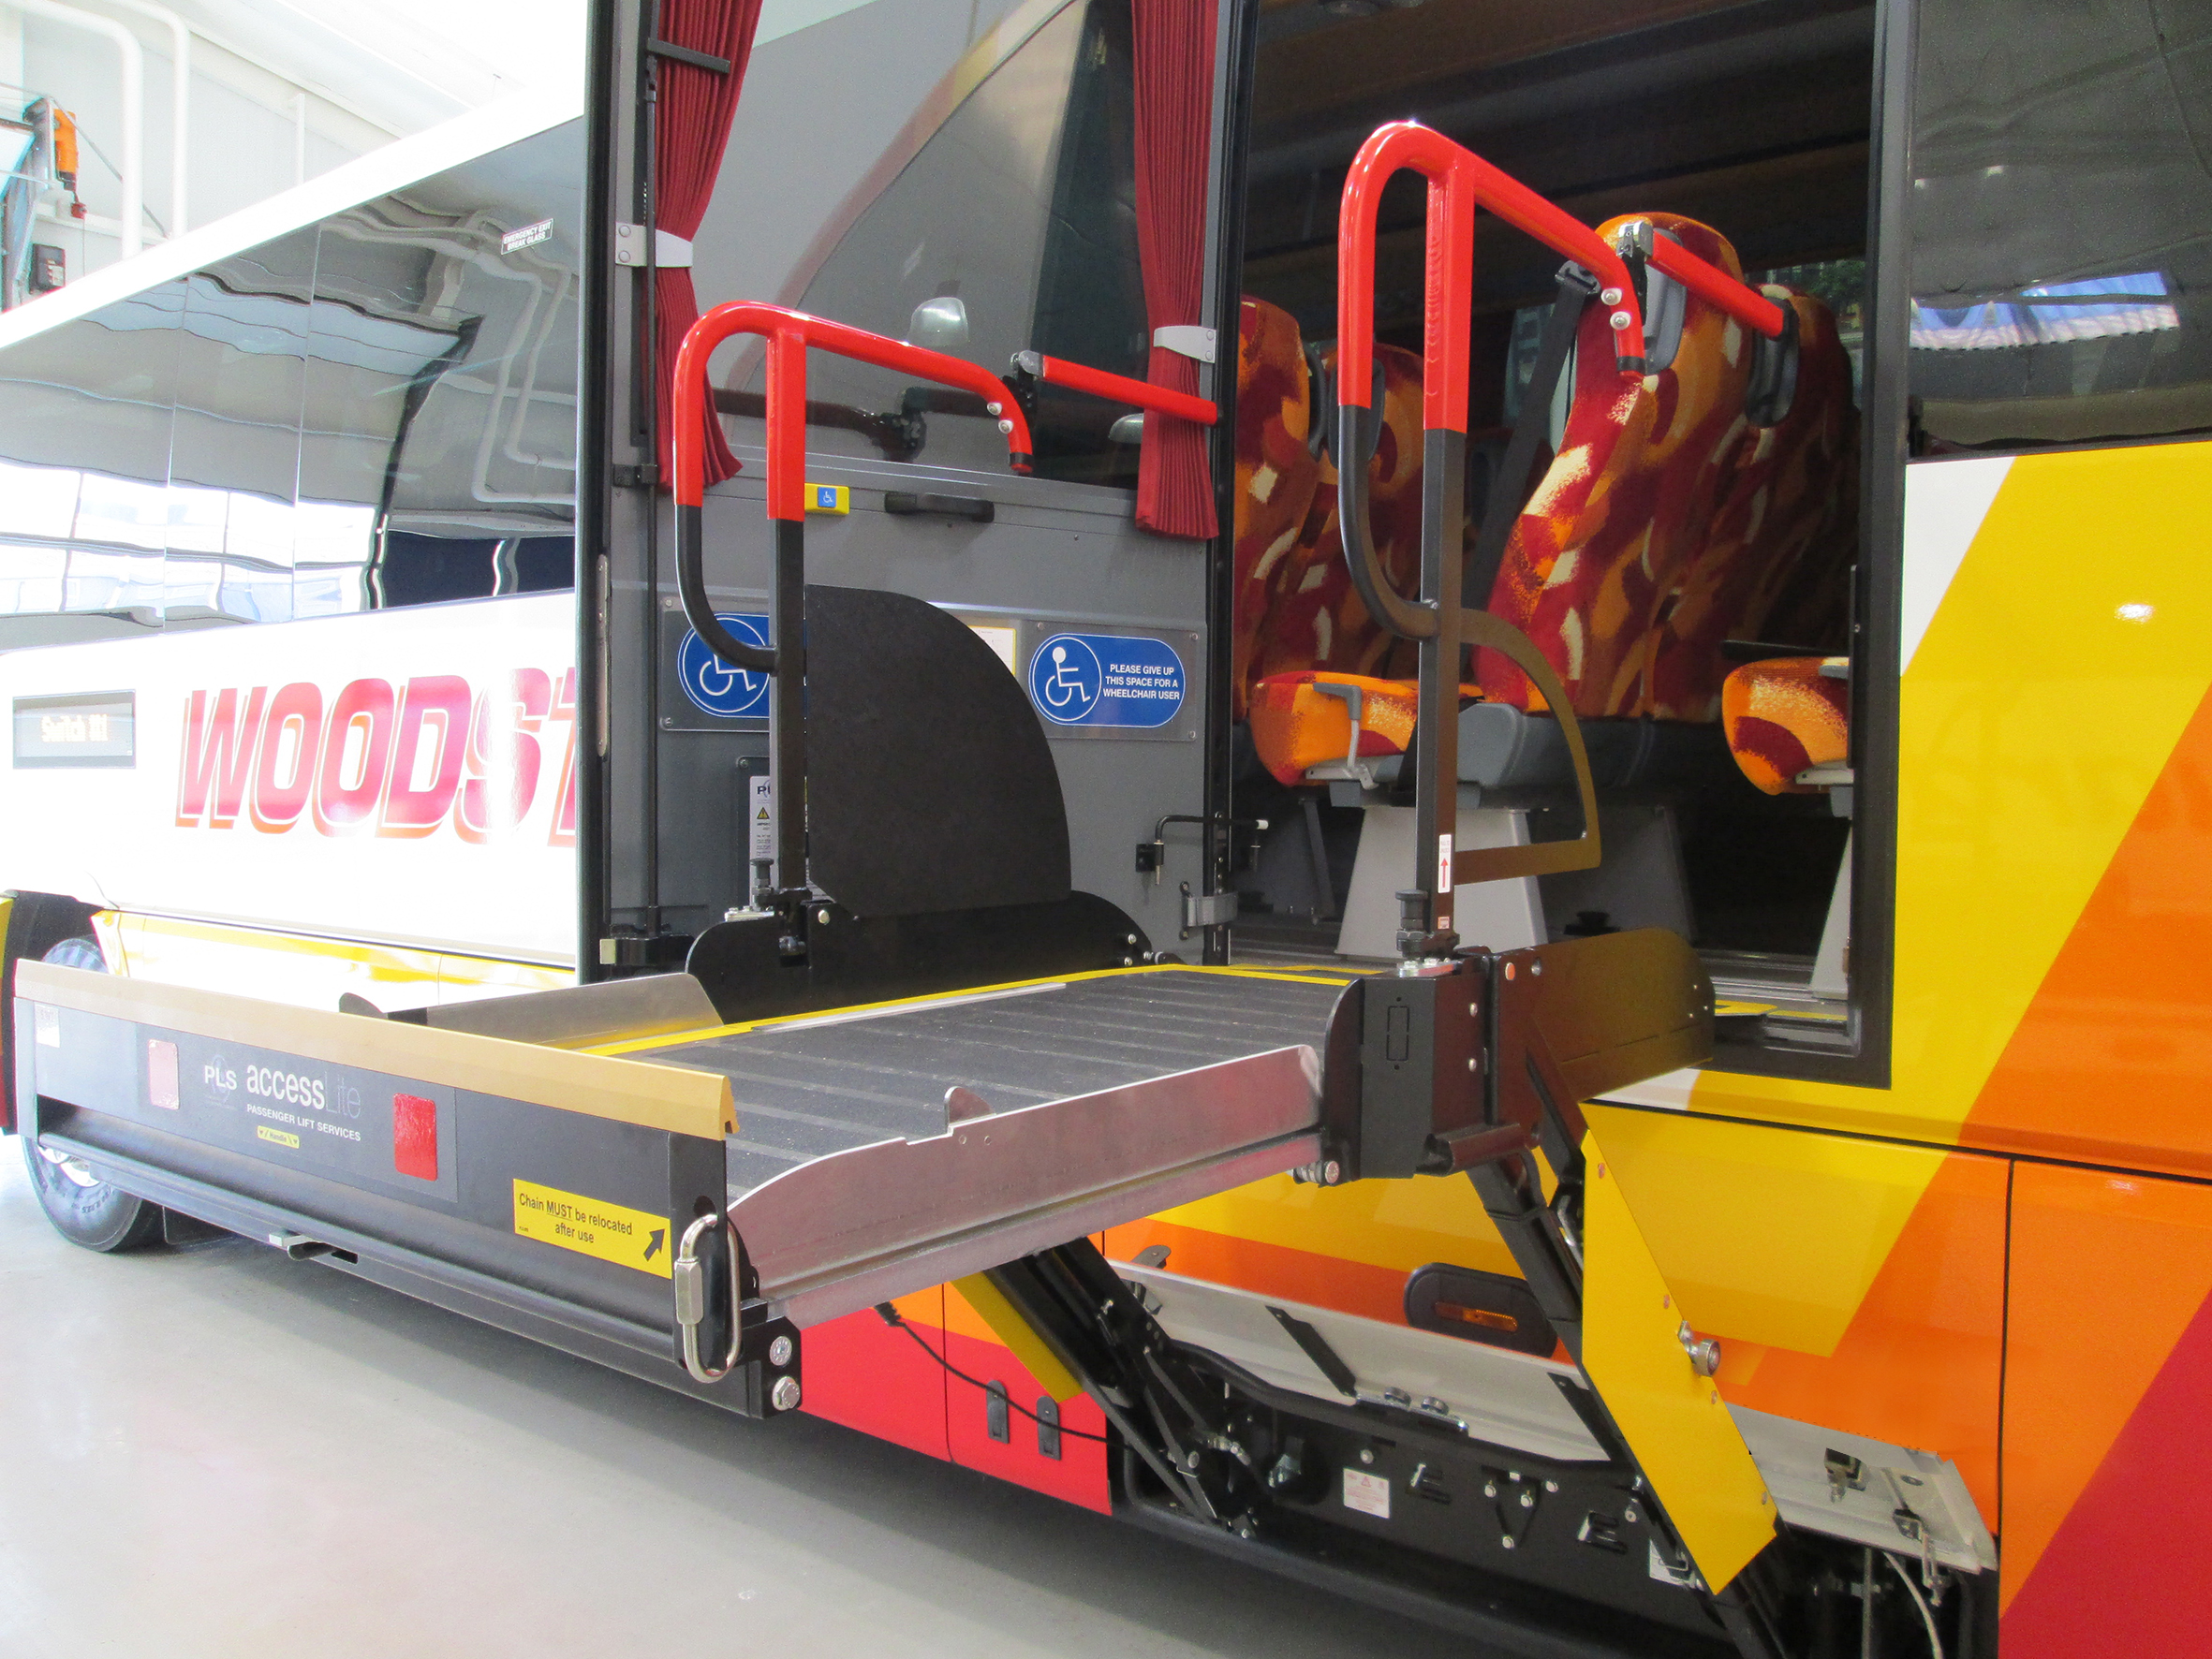 Latest PLS wheelchair passenger lift delivers highest lifting